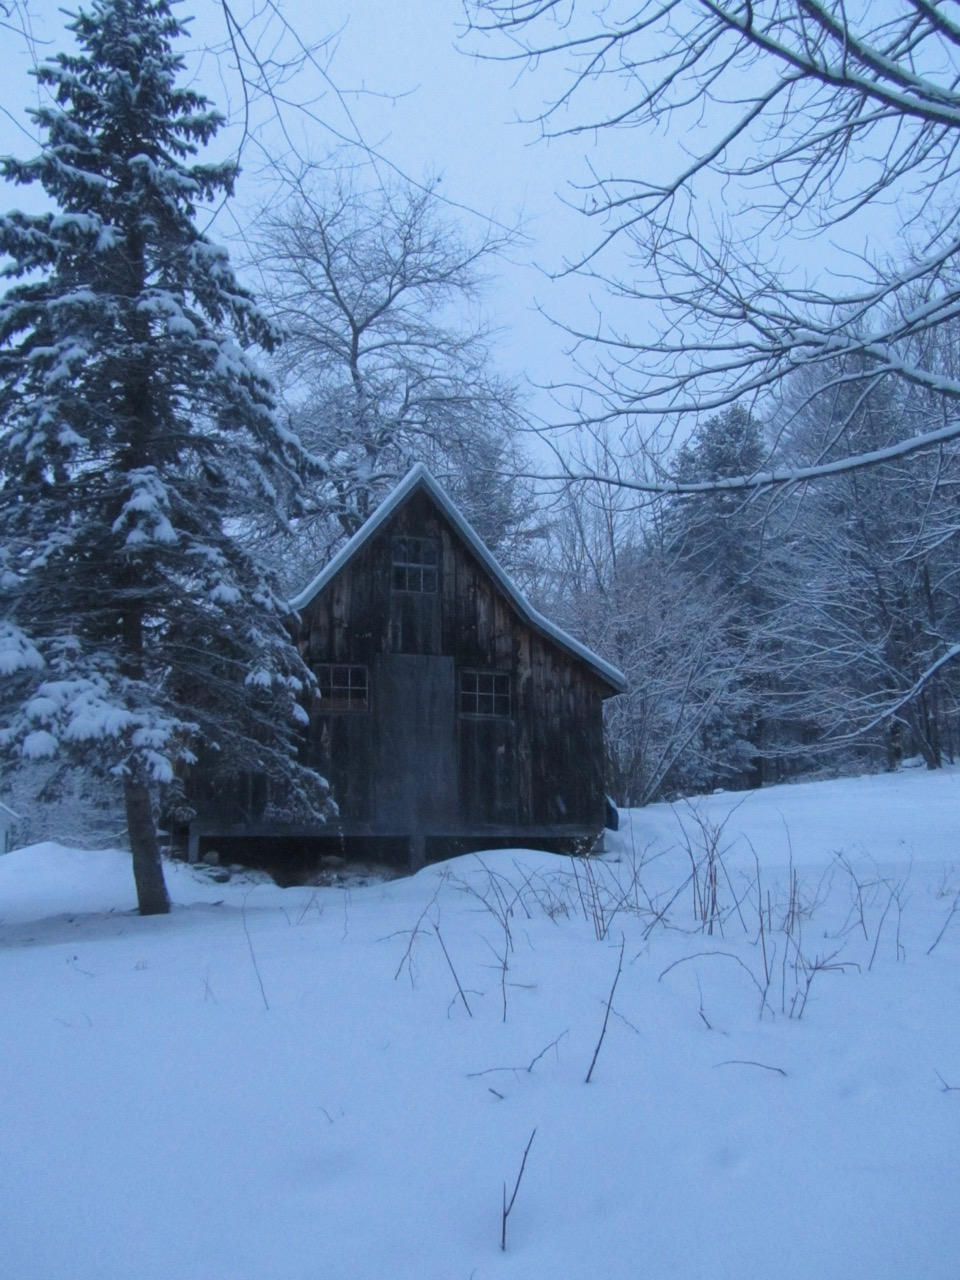 Exceptional Like A Fresh Coating Of Snow, The New Year Always Holds Endless  Possibilities. January Was Quite A Mix Of Weather, From Extreme Cold, To  Snow, Rain, Ice, ...